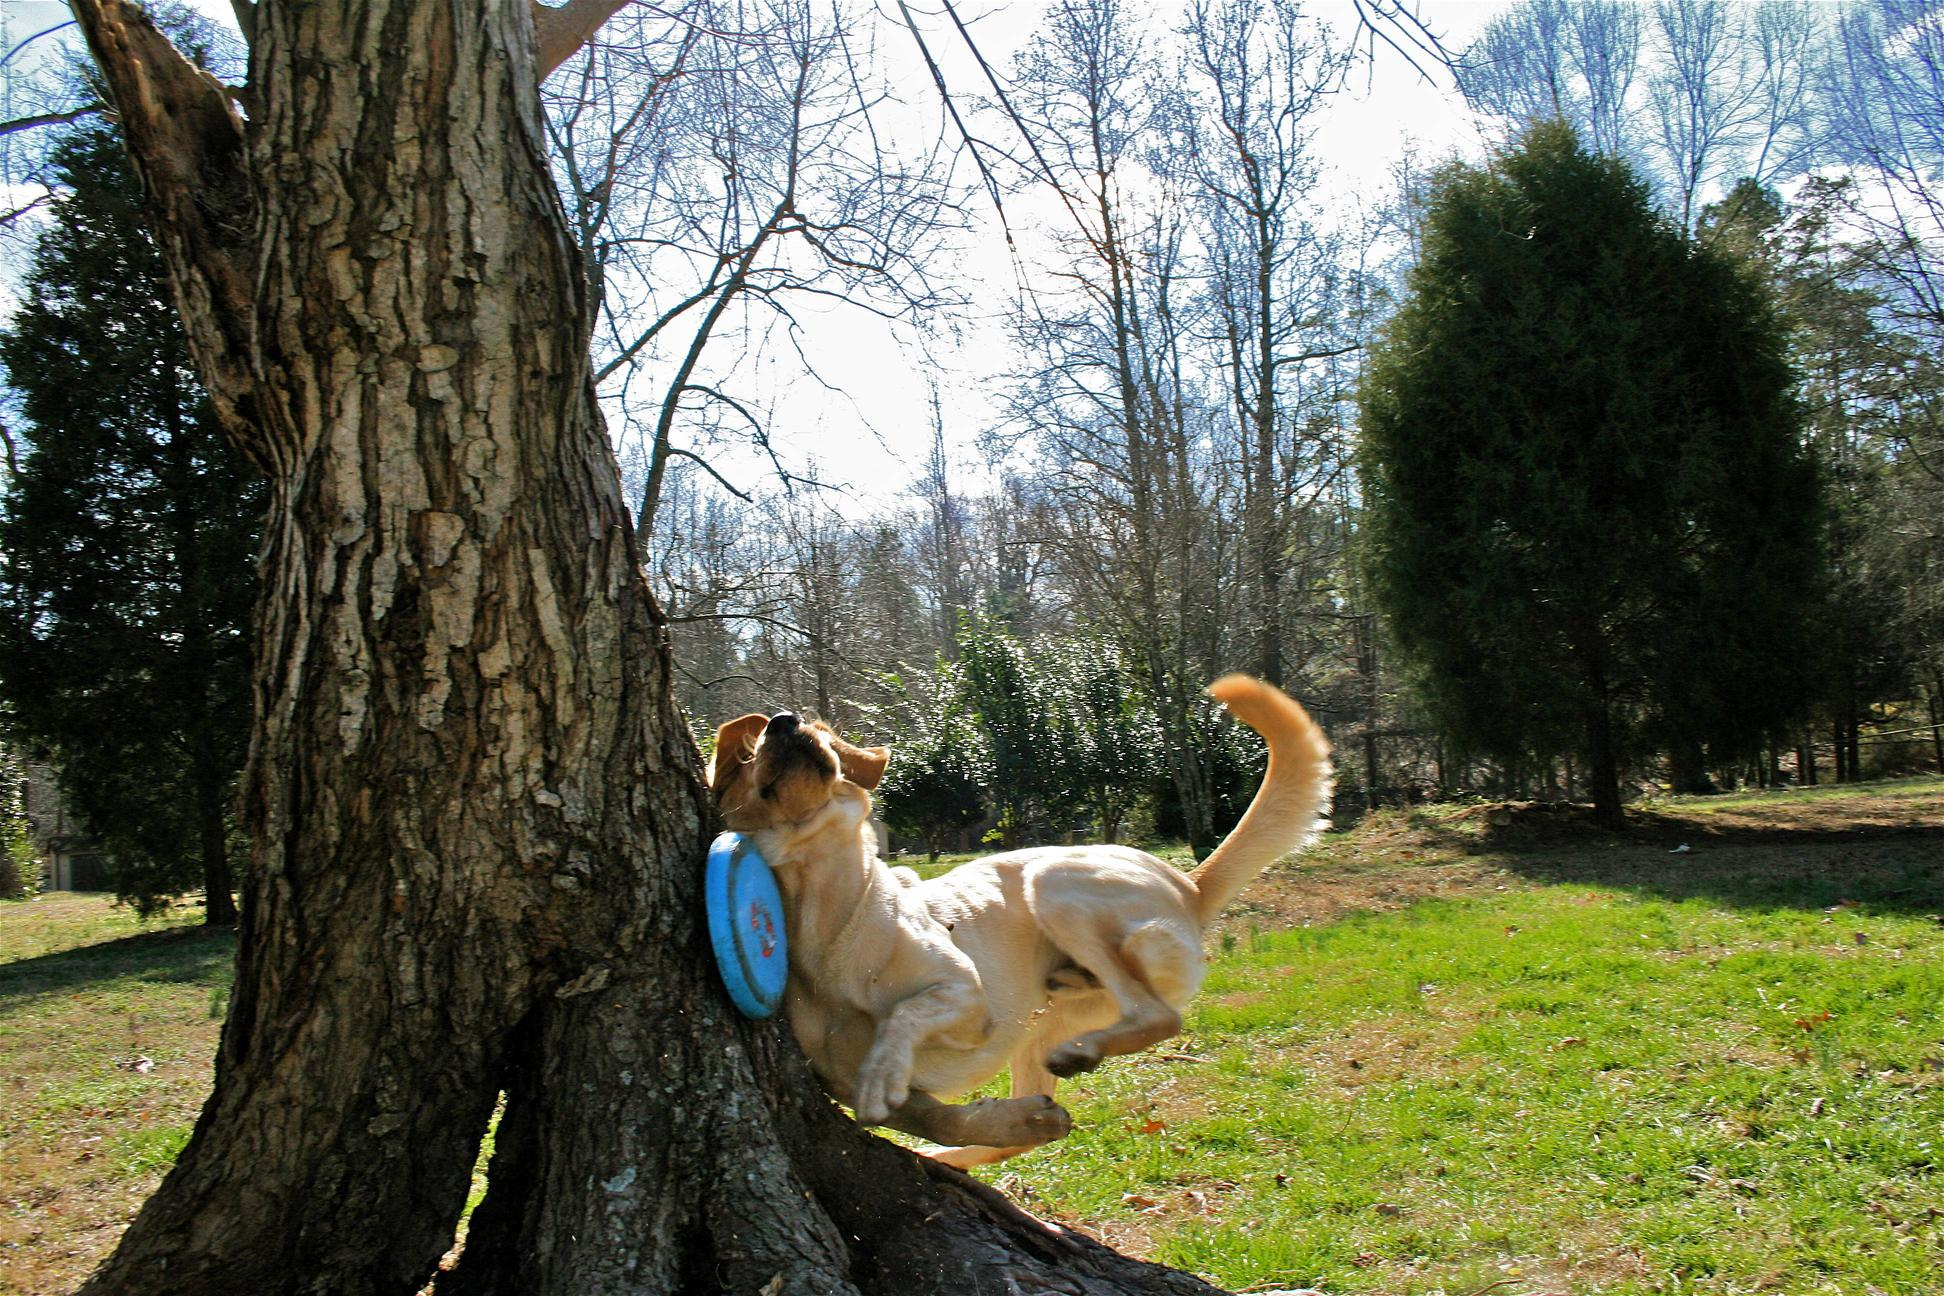 Dog Meets Tree While Playing Fetch In The Park With a Frisbee dog meets tree while playing fetch in the park with a frisbee